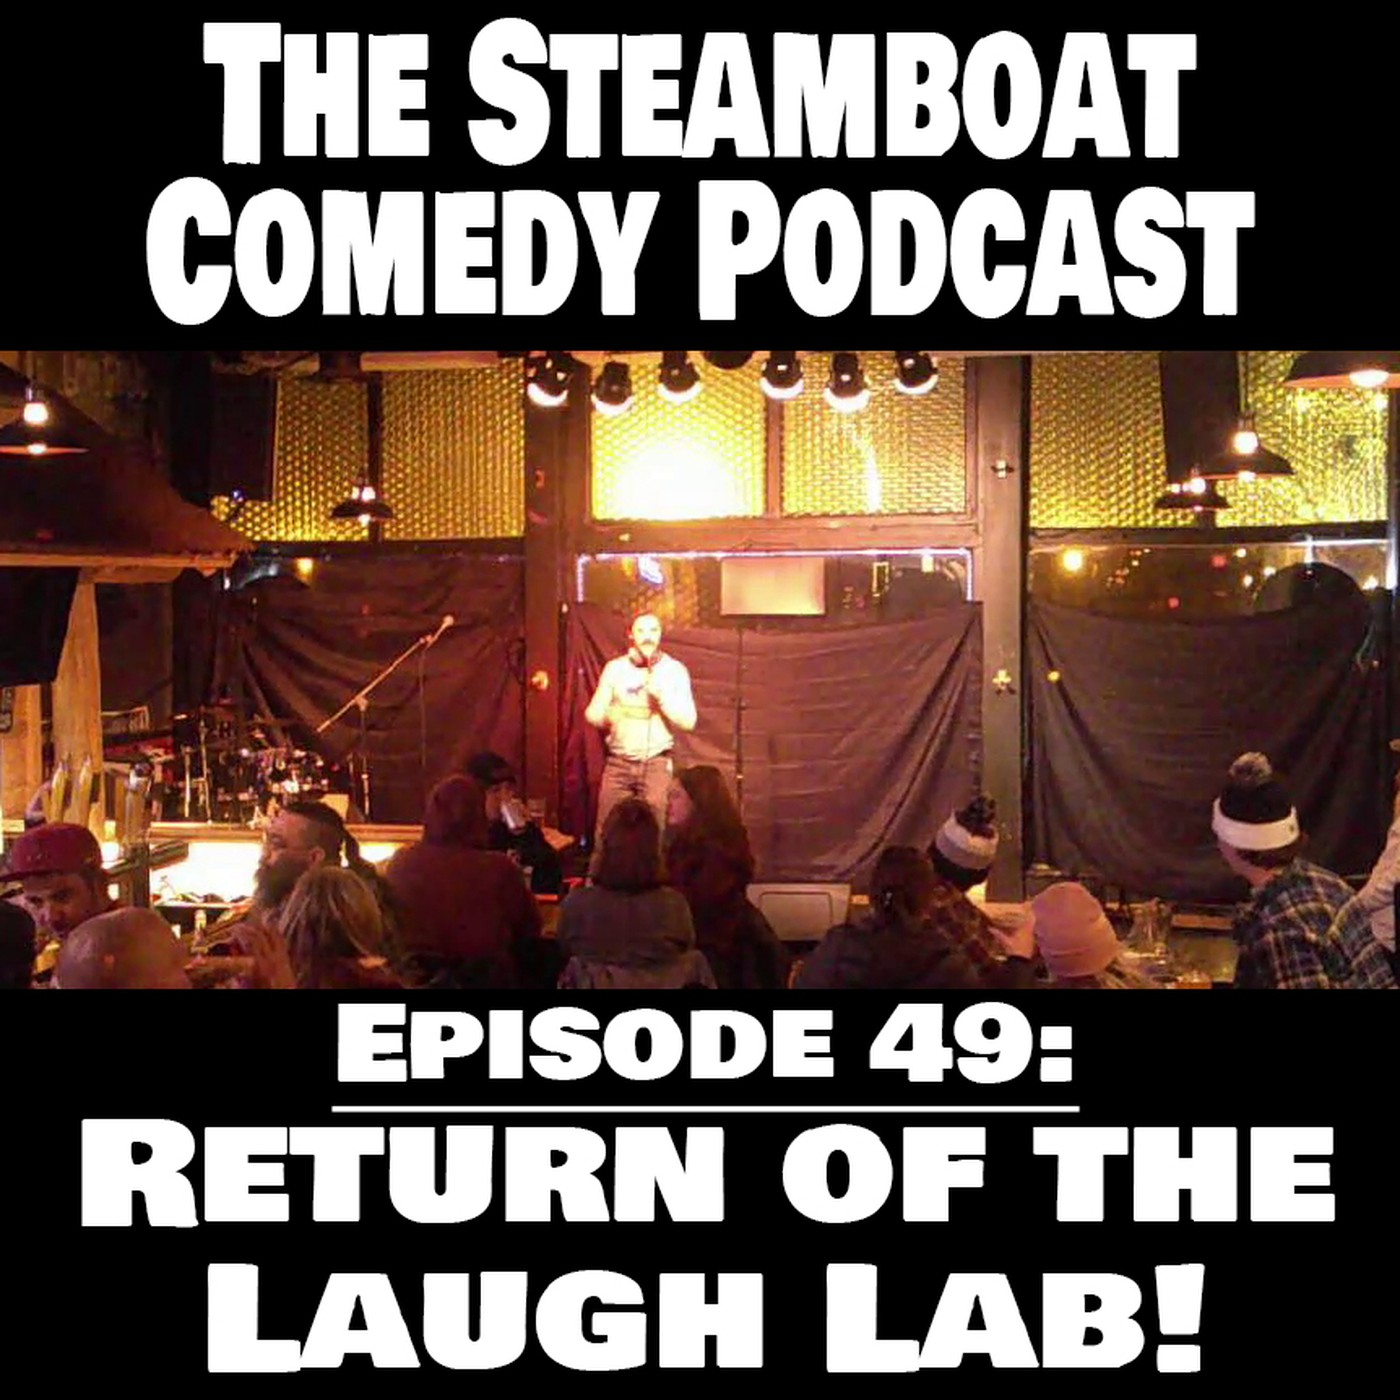 The Steamboat Comedy Podcast